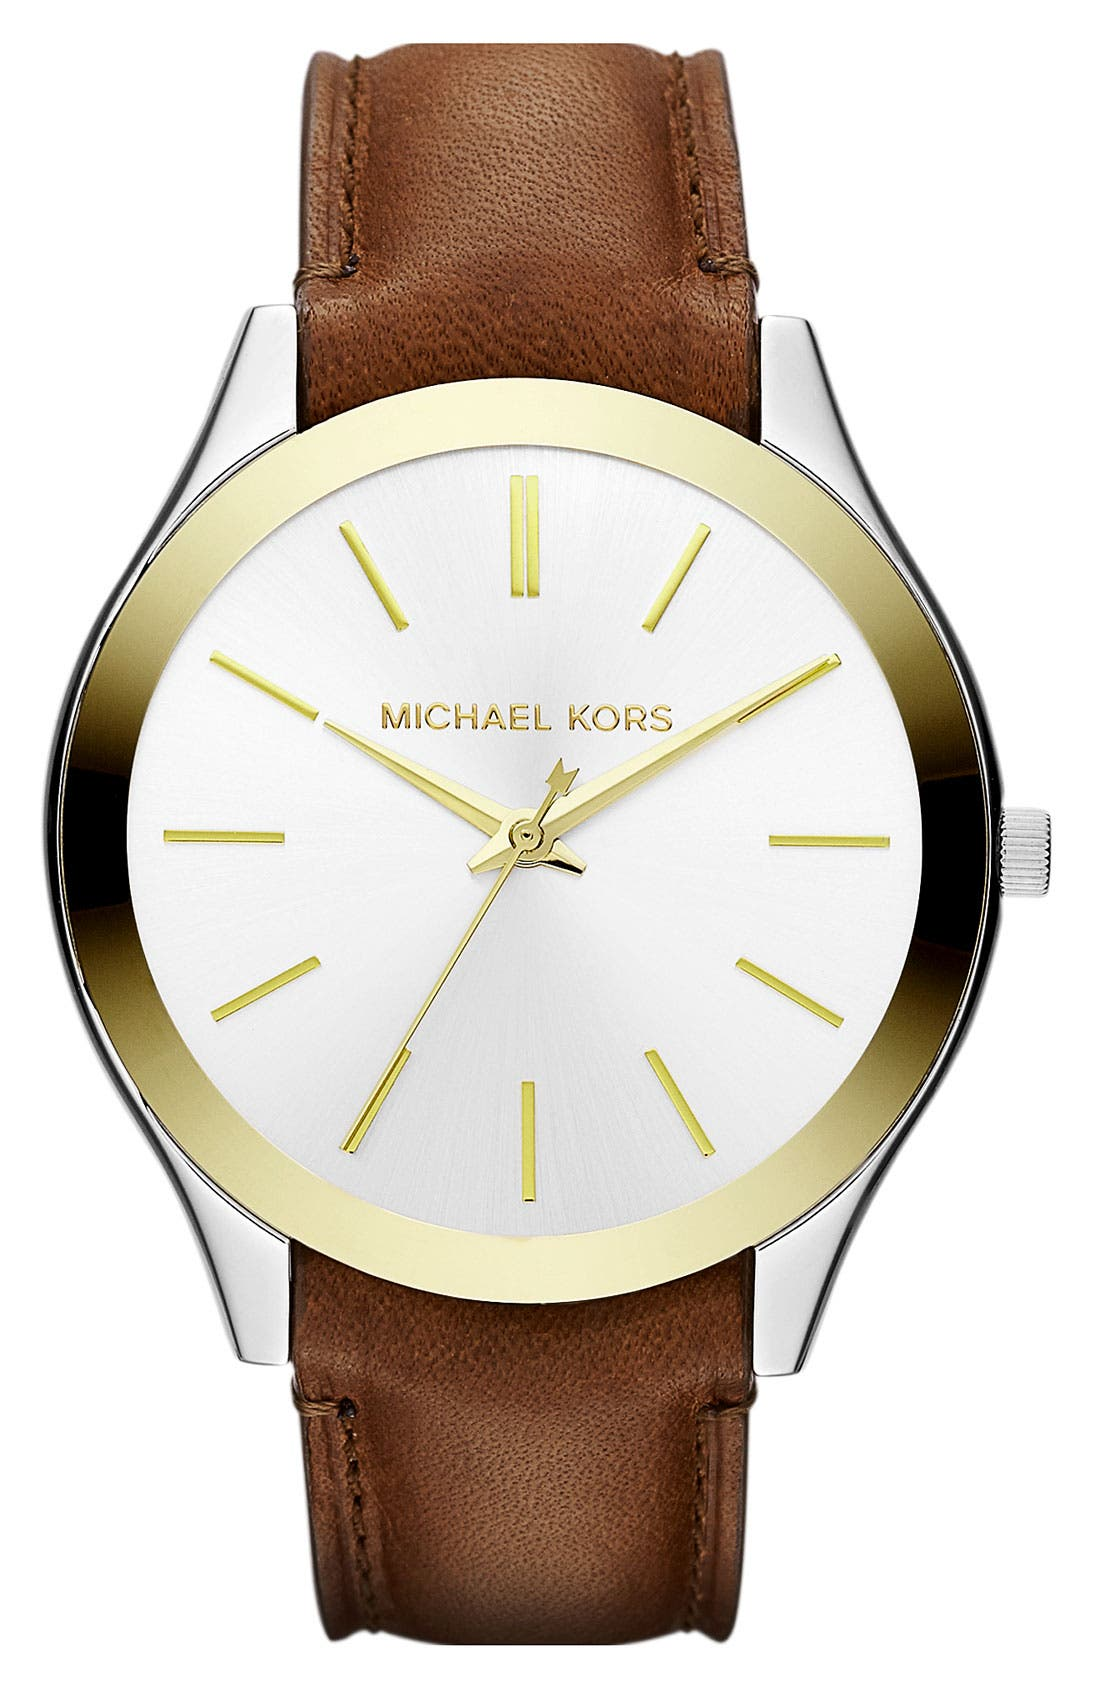 Michael Kors 'Slim Runway' Leather Strap Watch, 42mm,                             Main thumbnail 1, color,                             Chocolate